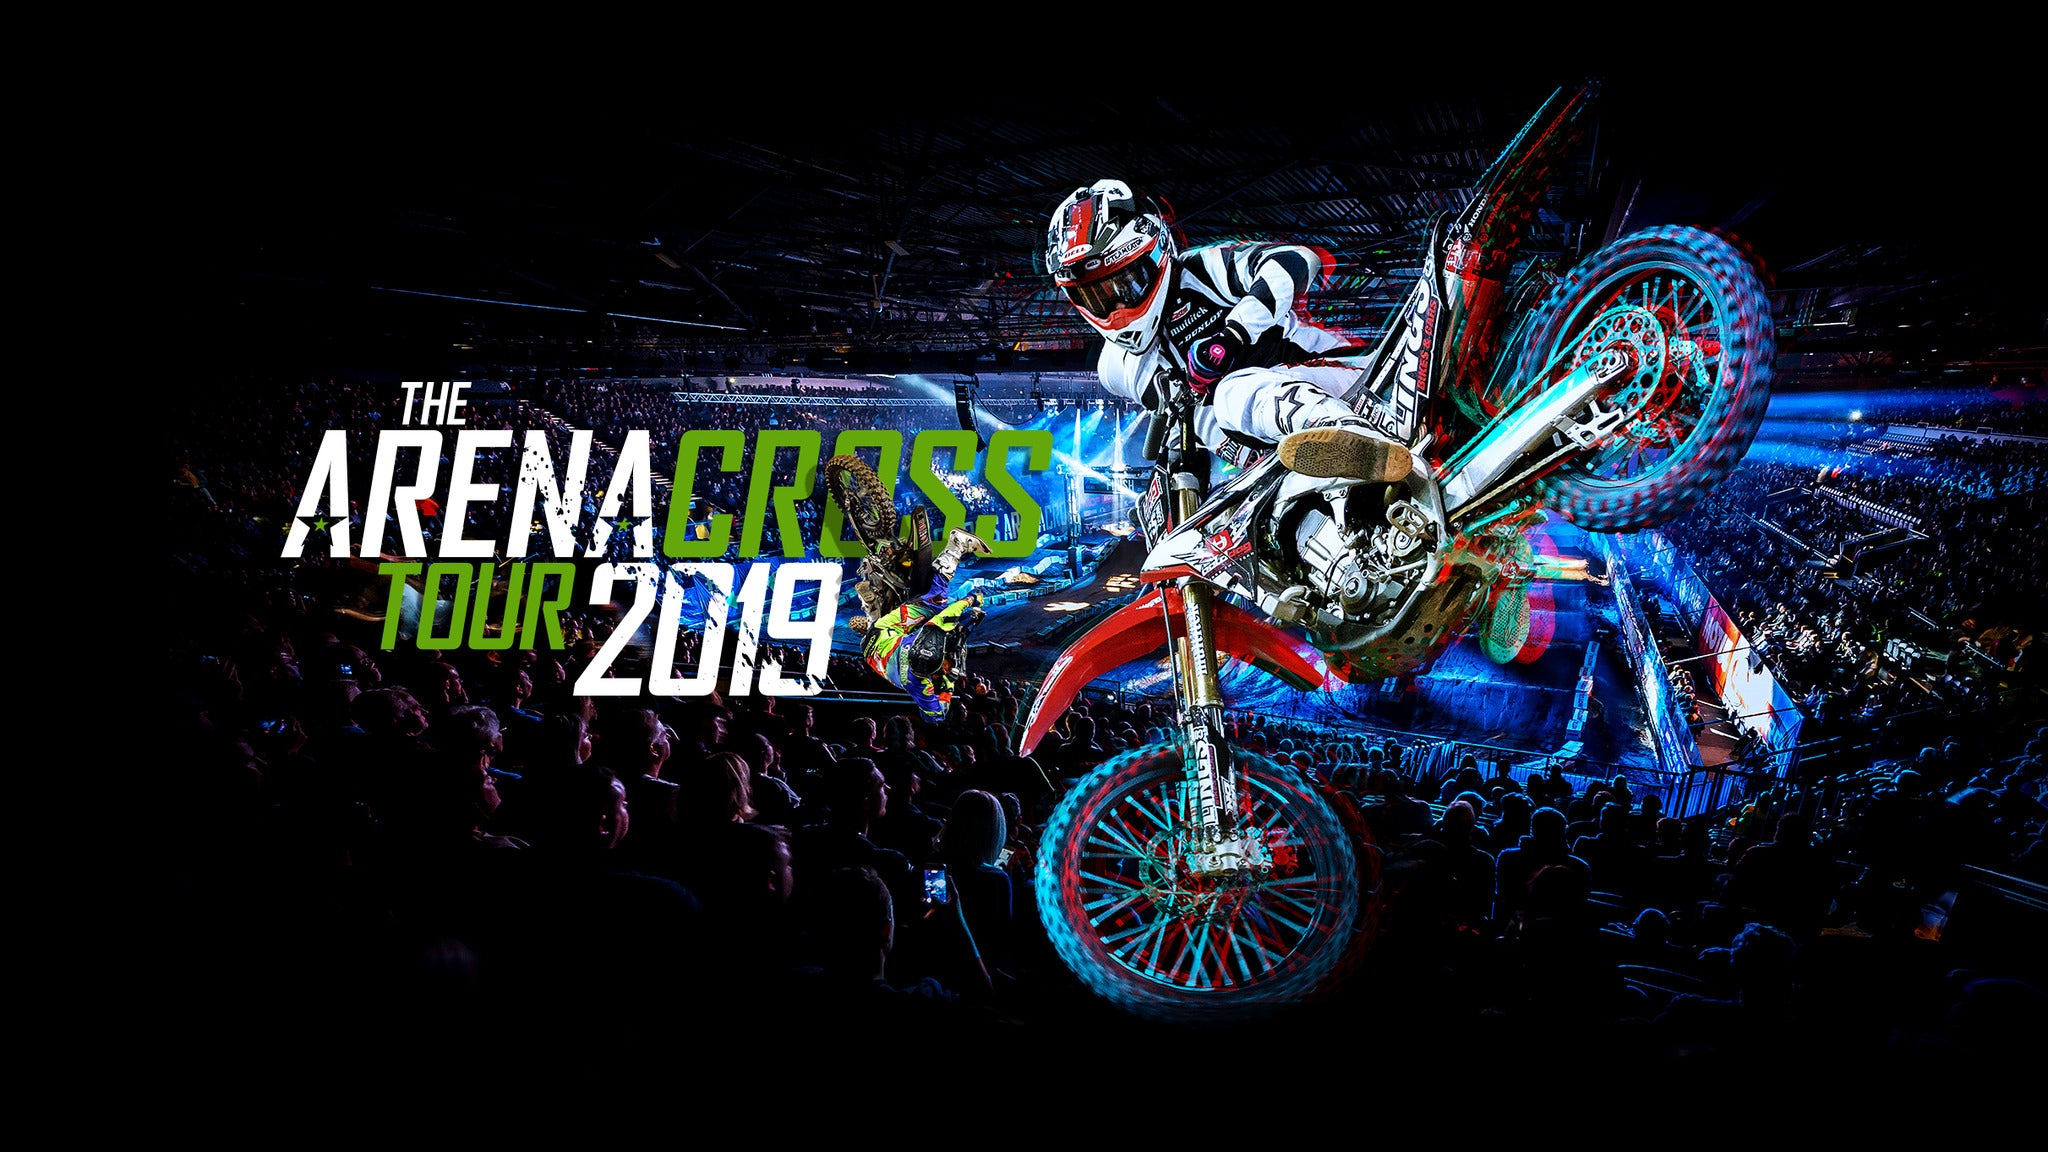 The Arenacross Tour - Saturday Night FlyDSA Arena (Sheffield Arena) Seating Plan